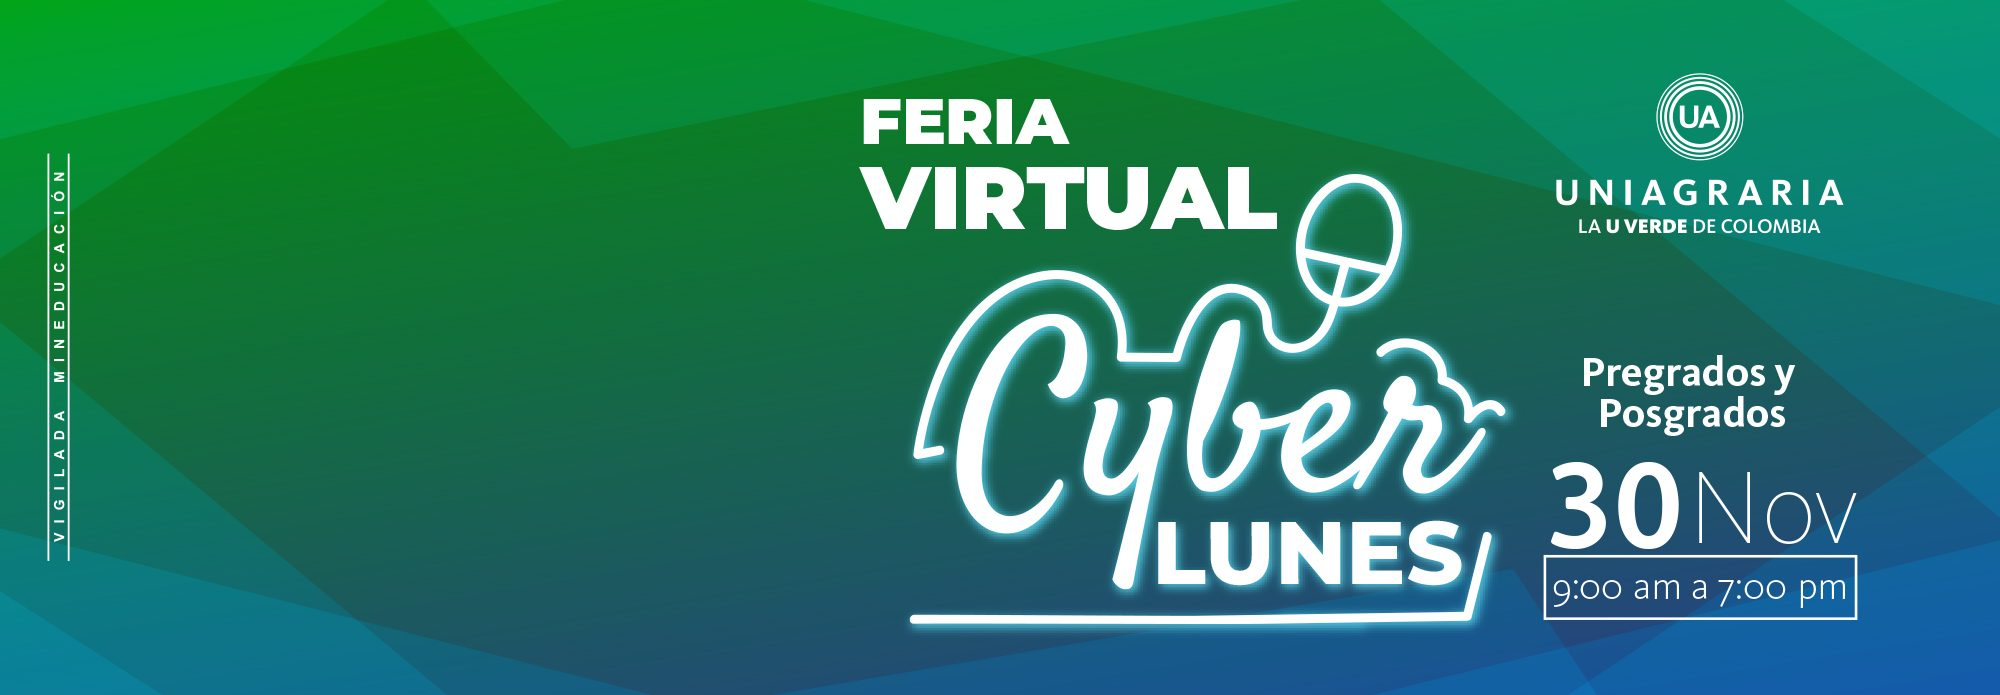 Cyber lunes